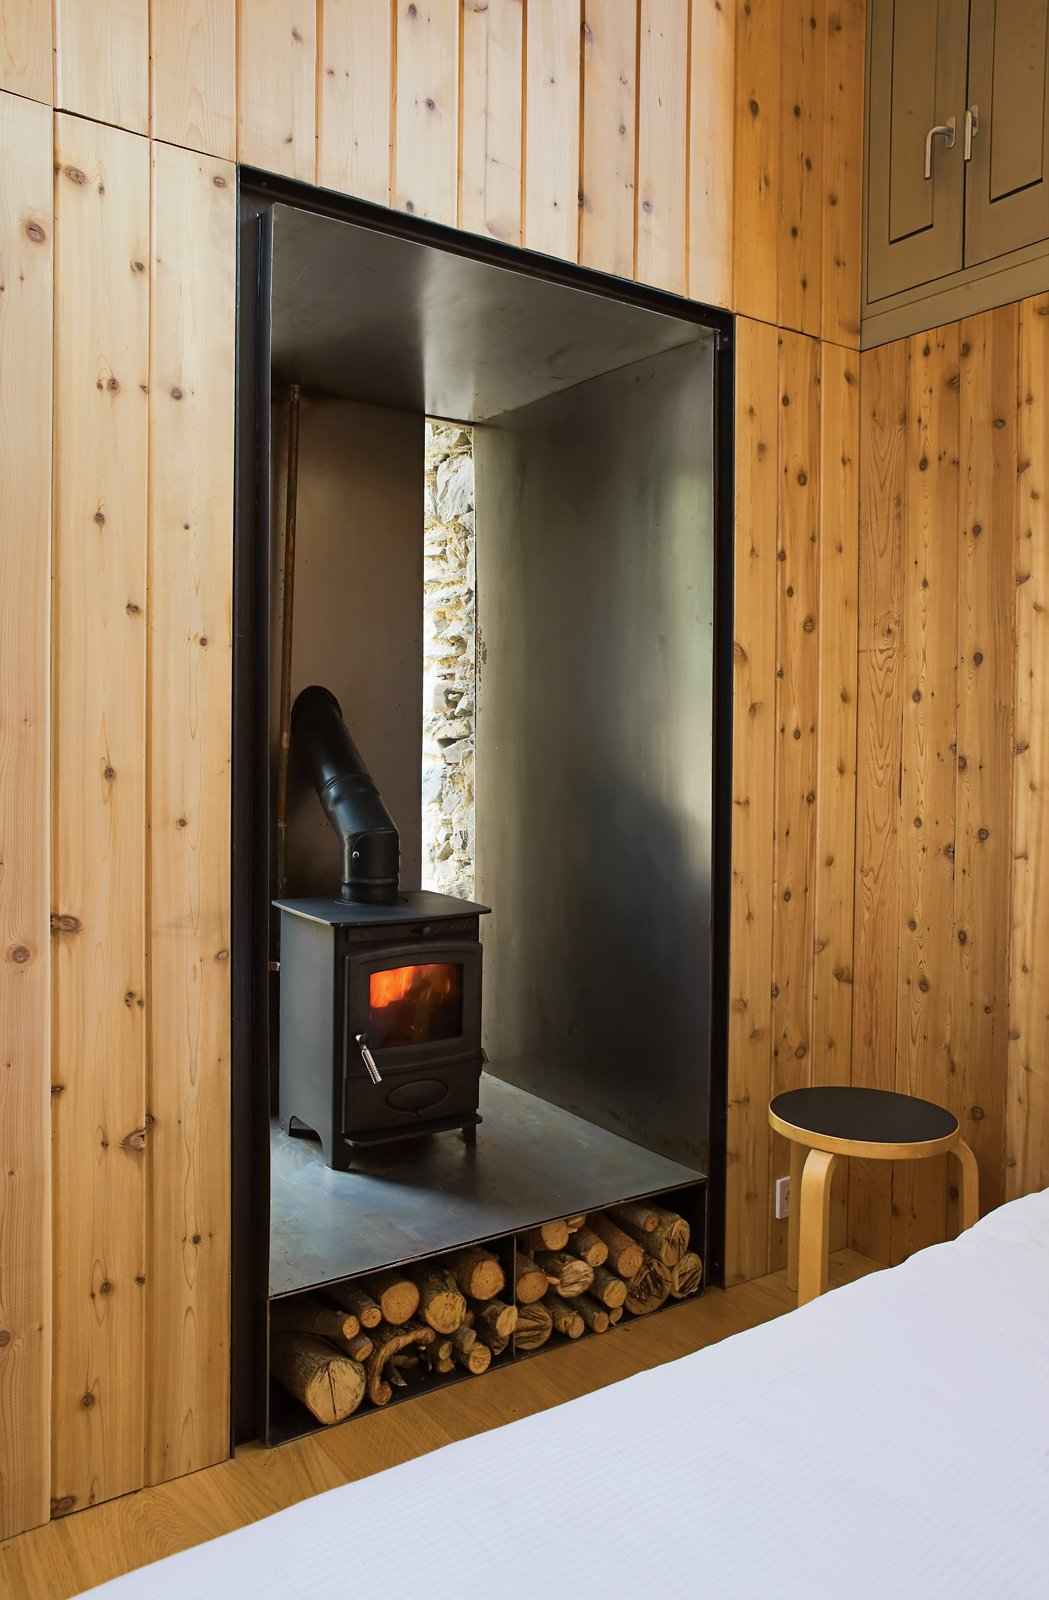 """To heat the small structure, Blee and Halligan installed a 17.75-inch-tall, 15.75-inch-wide, and 15.75-inch-deep wood-burning stove equipped with a built-in water boiler. The stove was built into an old doorway that was no longer needed. By wrapping the walls in sheet steel, Blee and Halligan made the area fire-resistant, and the warmth from the stove is amplified as it reflects into the room. Though it's handy in the winter, the stove-boiler combination is merely decoration in the summer: """"It's so hot that we just bathe in the river nearby,"""" Blee says.  Modern Wood-Burning Stoves by Megan Hamaker from A Couple Restores a Seemingly Hopeless Mill in France"""